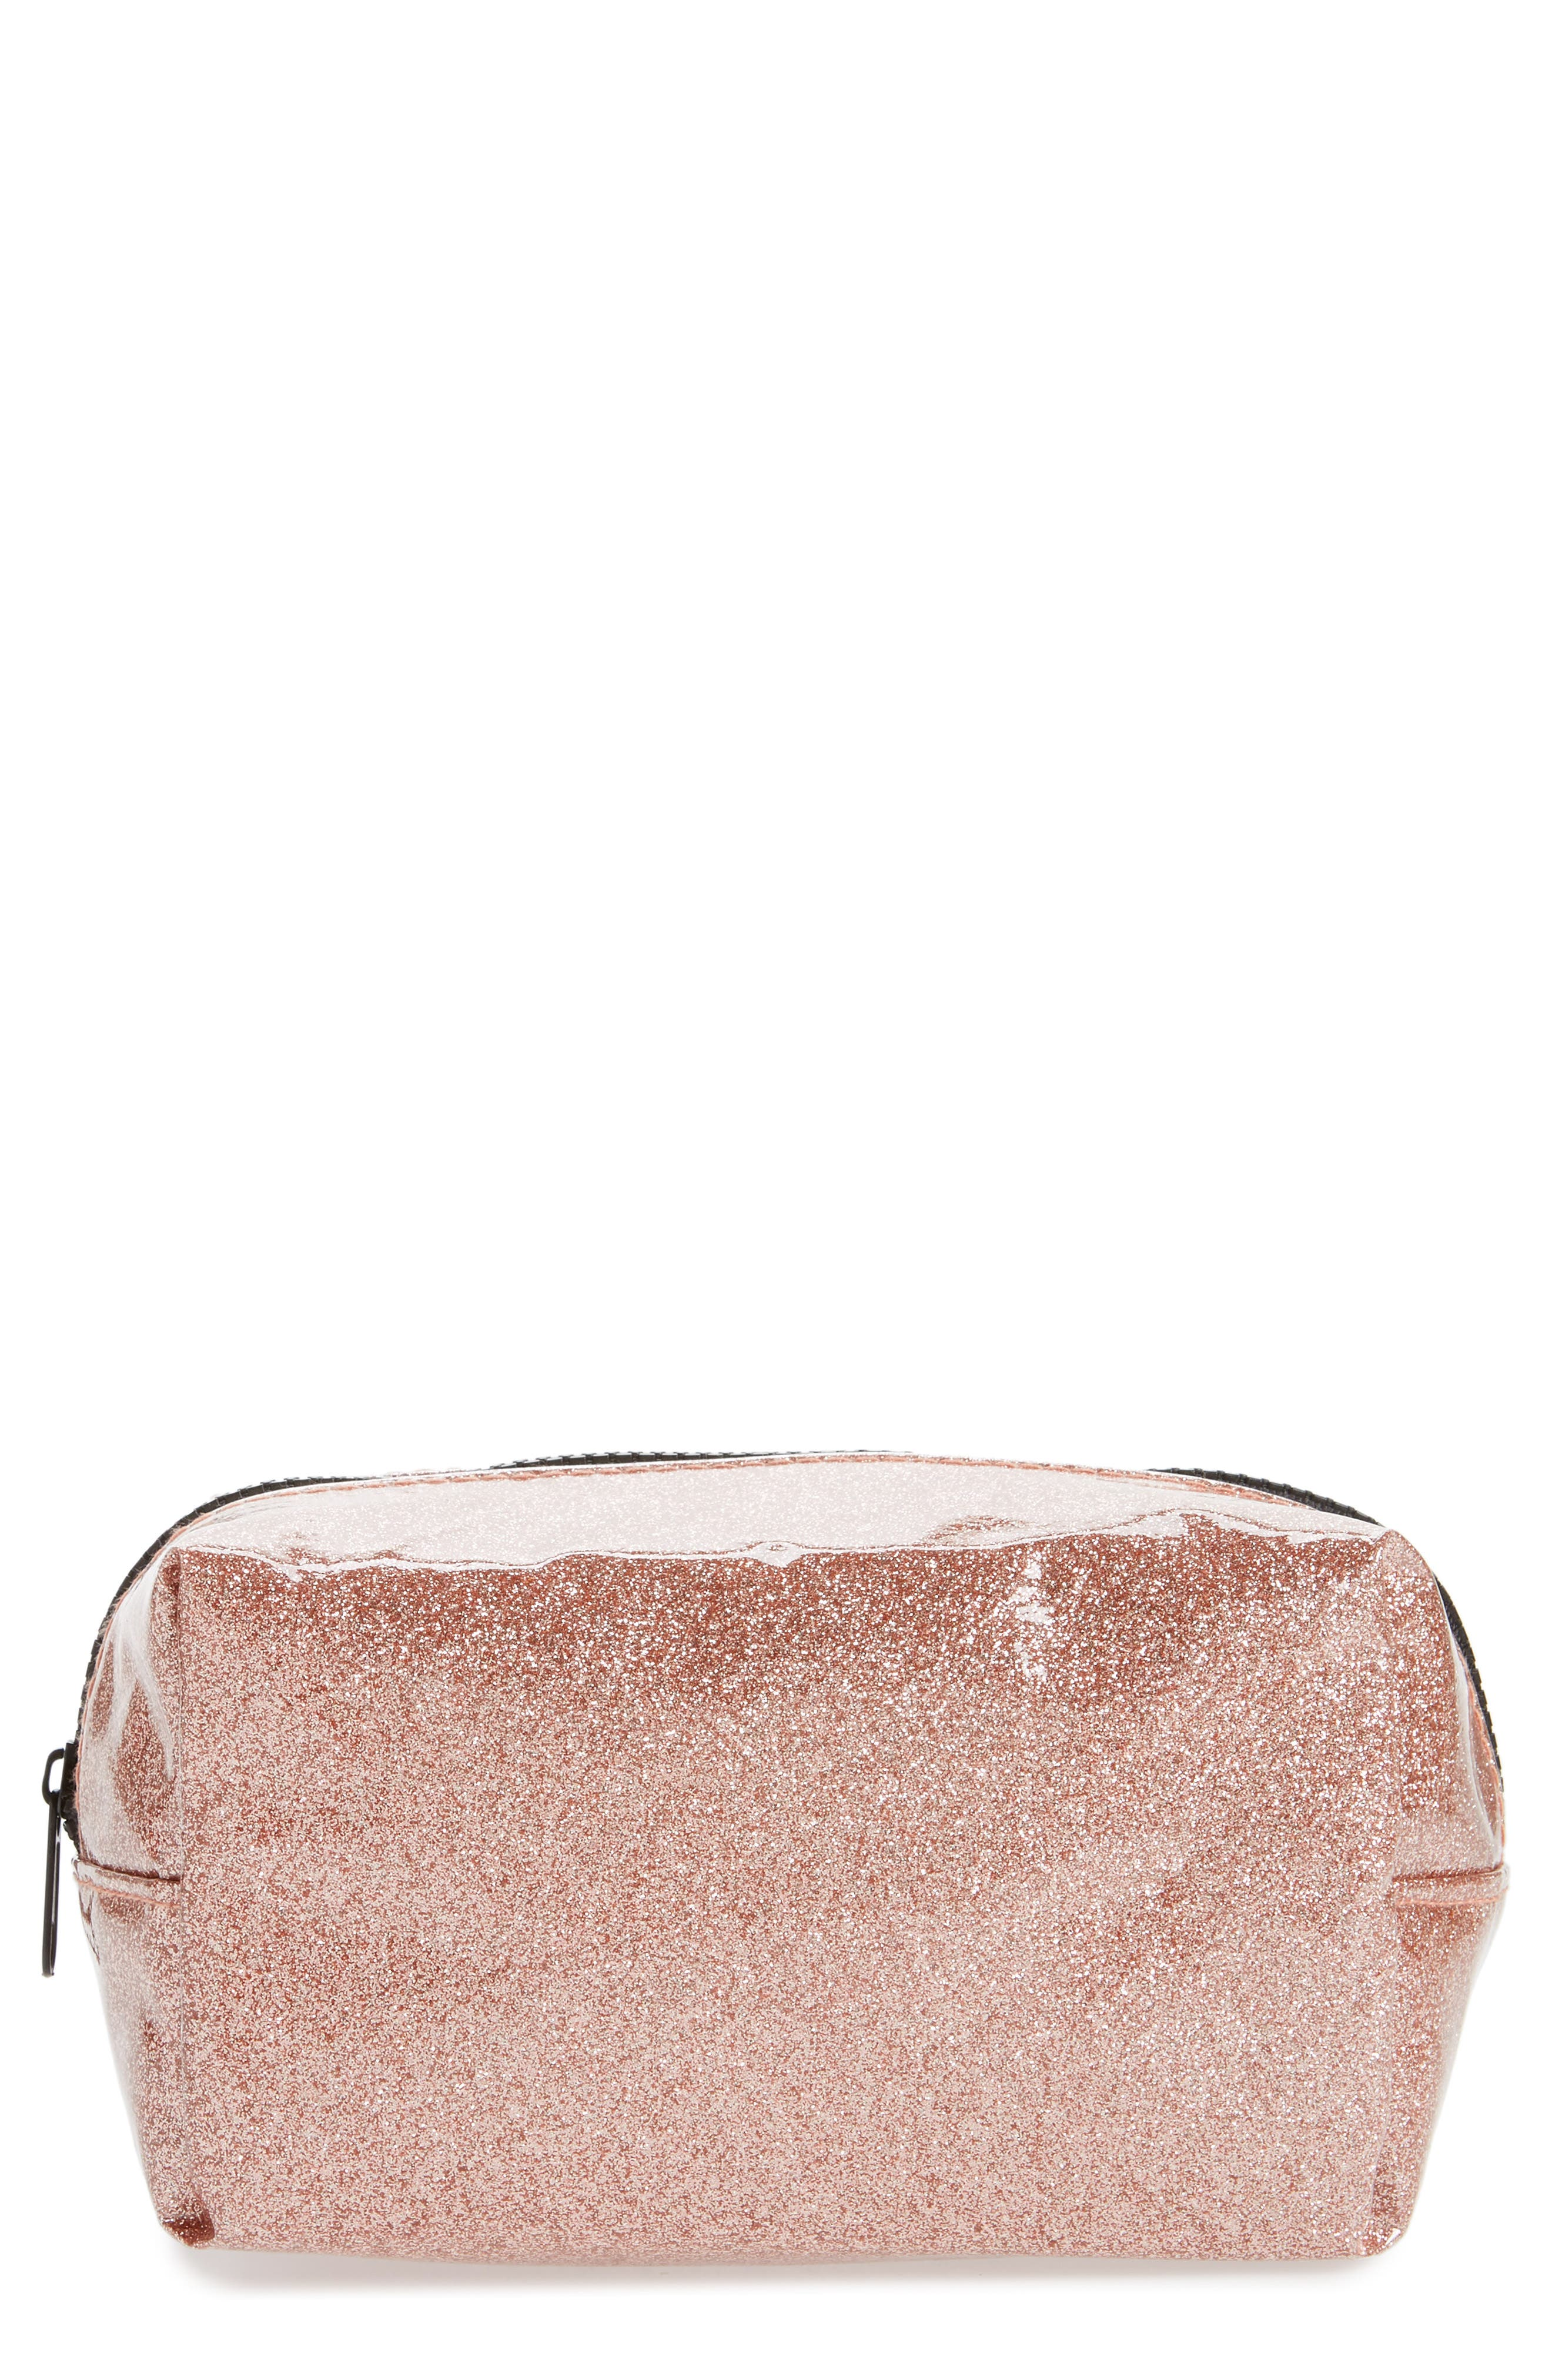 Cosmetics Case,                         Main,                         color, ROSE GOLD